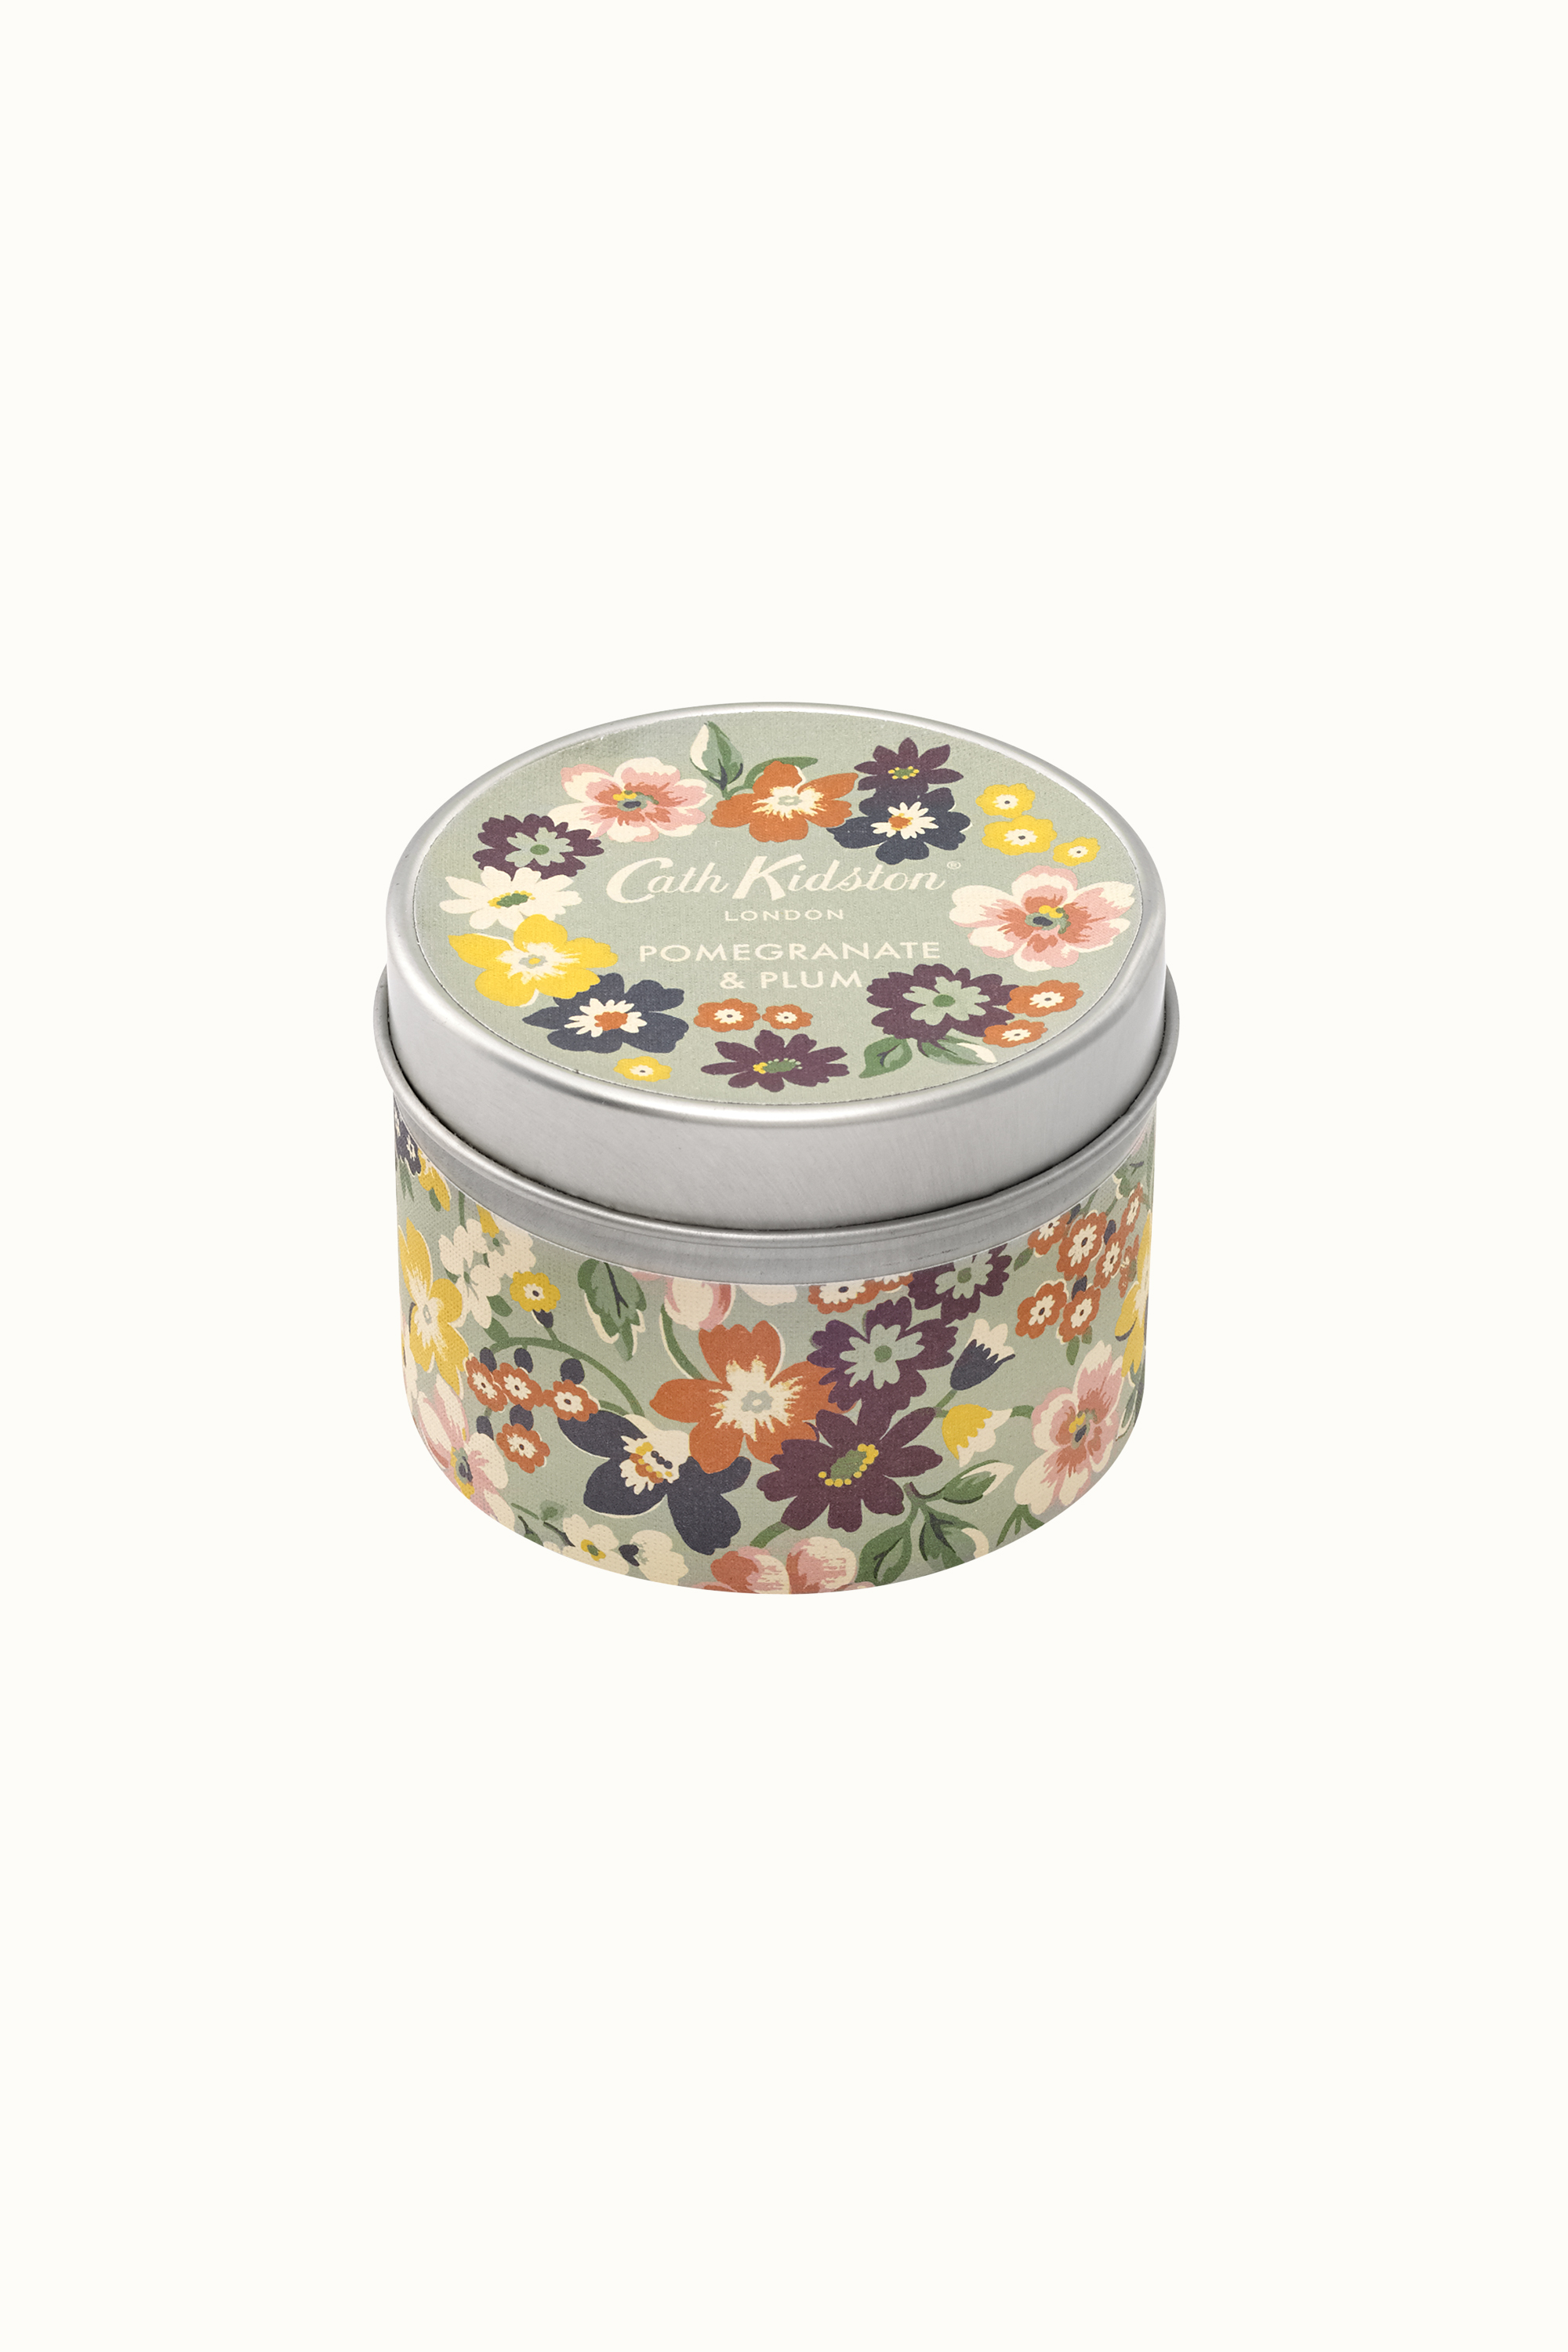 Cath Kidston Portland Flowers Pomegranate & Plum Tin Candle in Sage